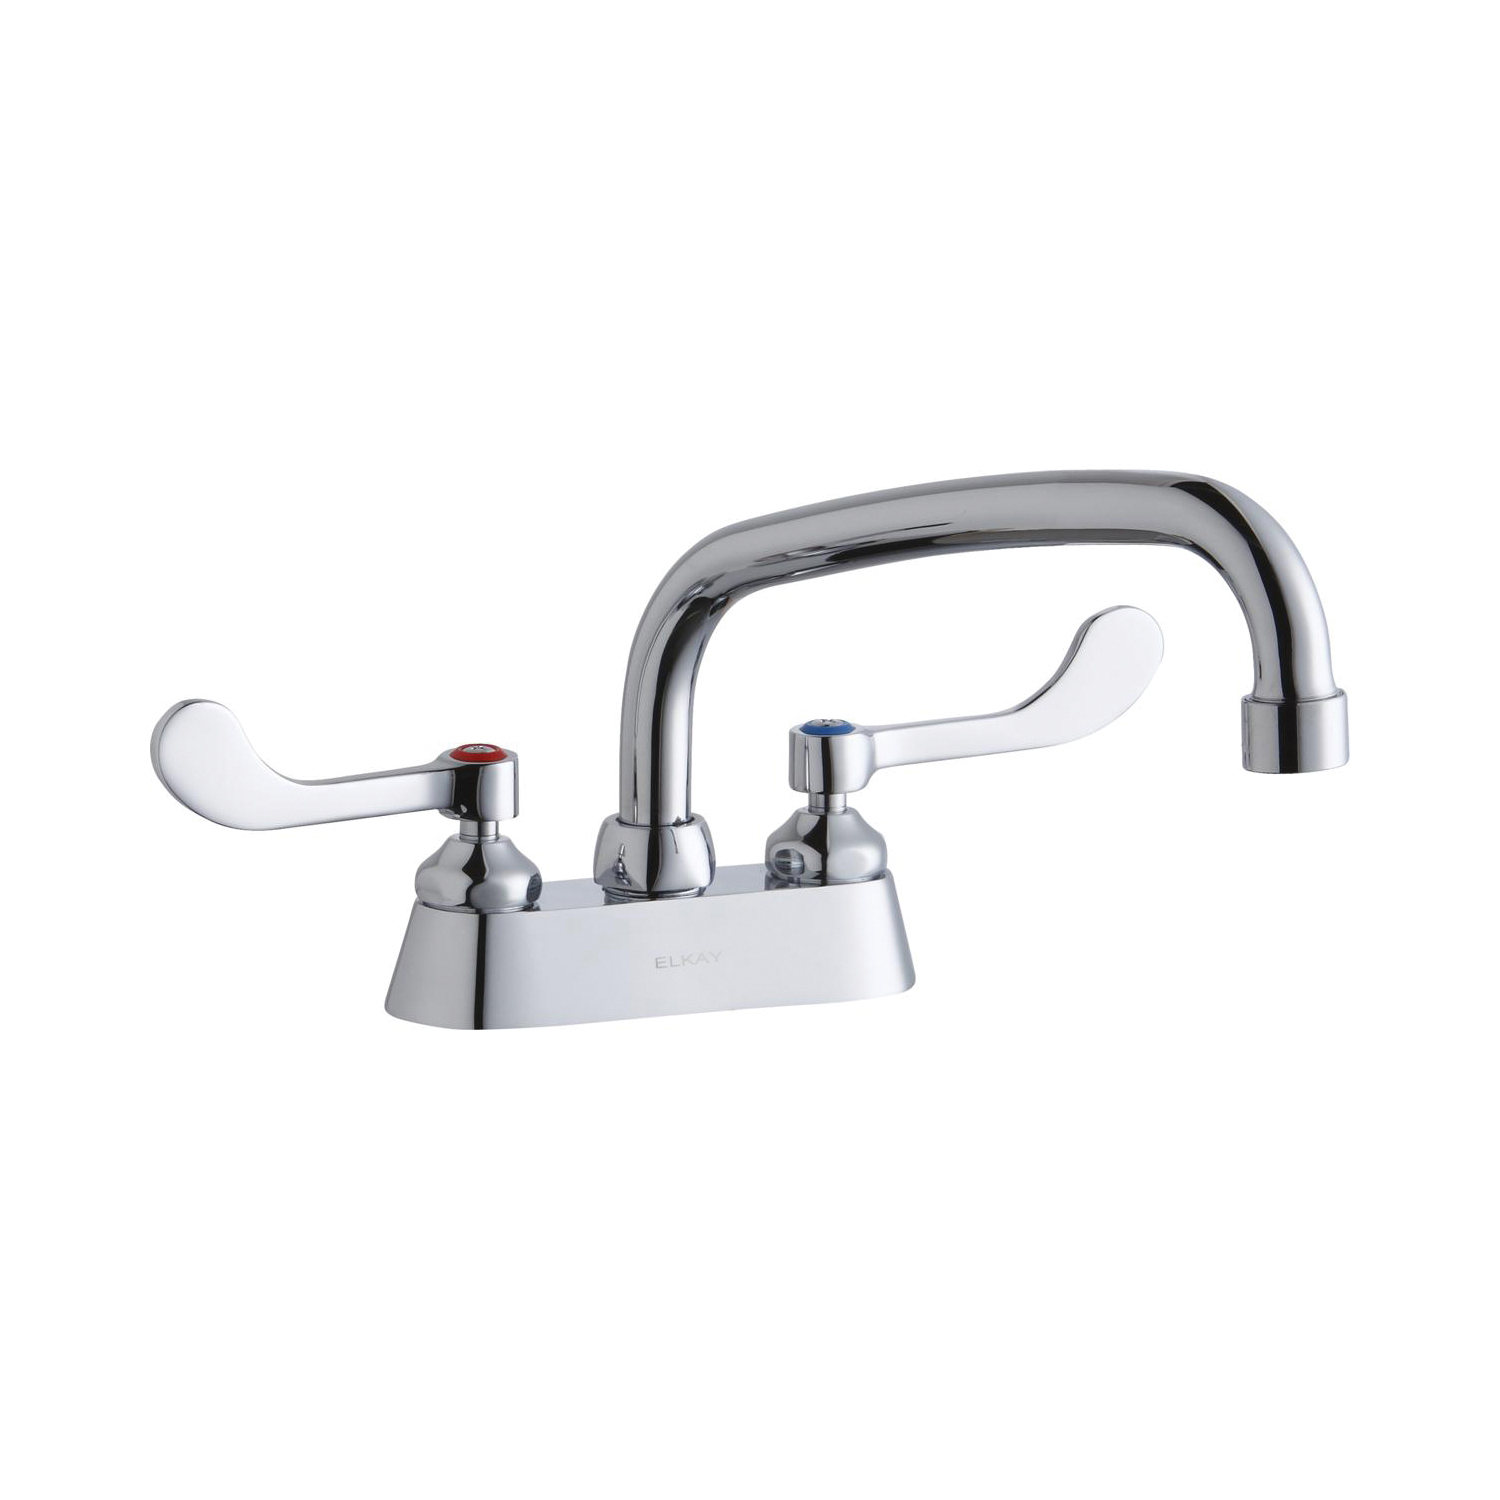 Elkay® LK406AT08T4 Centerset Bathroom Faucet, Chrome Plated, 2 Handles, 1.5 gpm